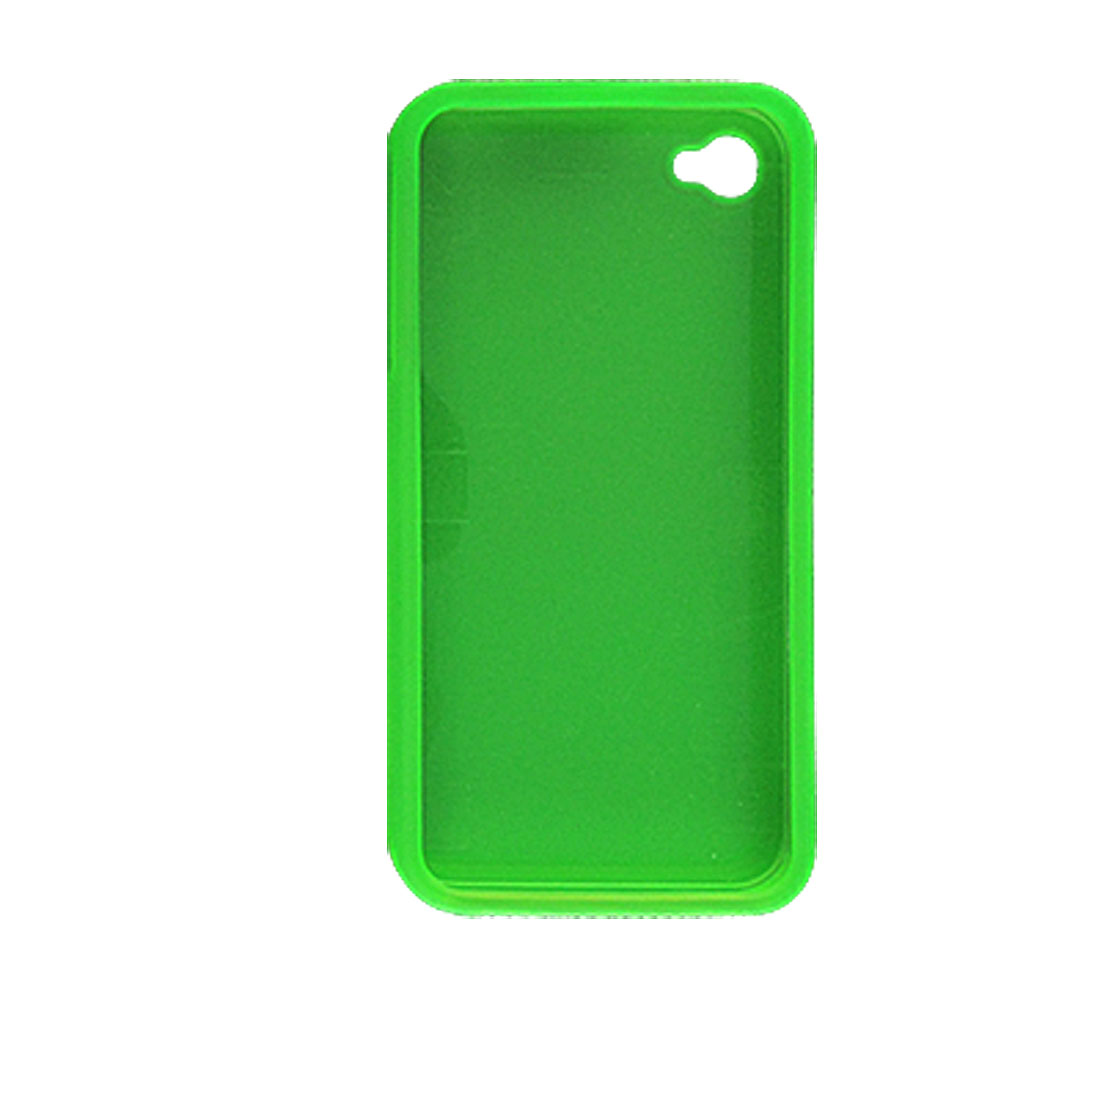 Green Rubberized Plastic Case Shield for Apple iPhone 4 4G